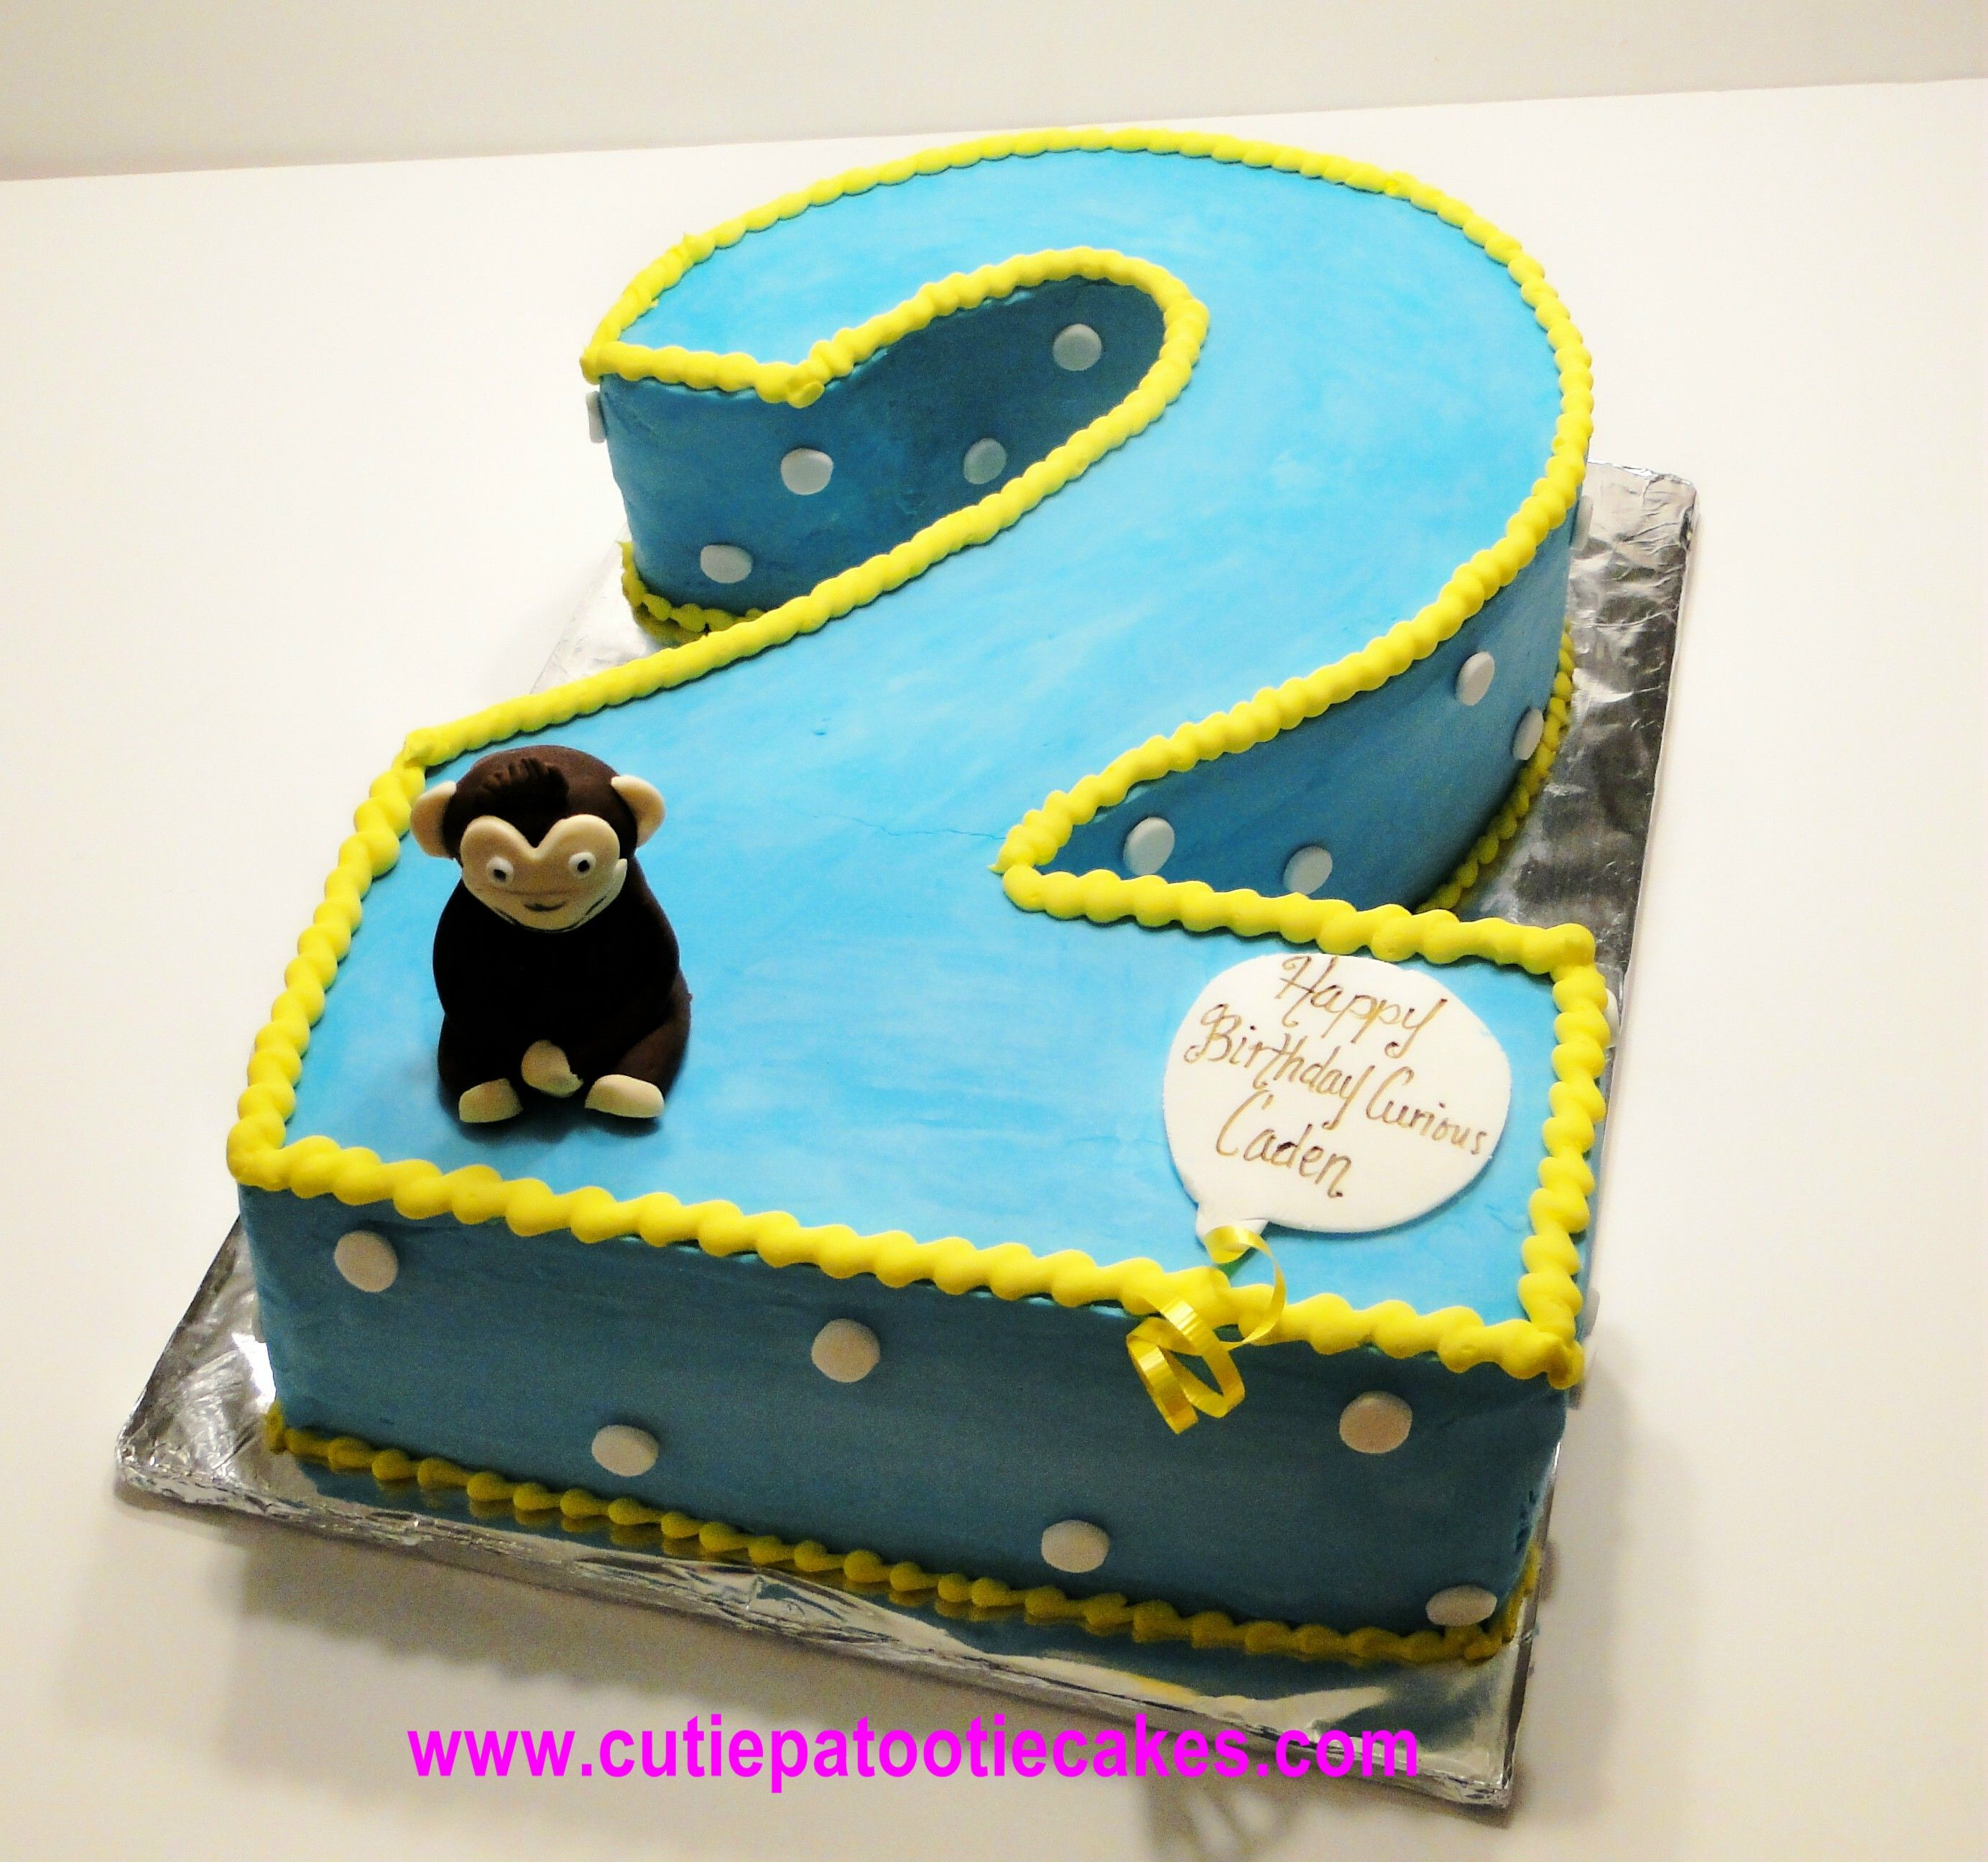 Happy 2nd Birthday Cake